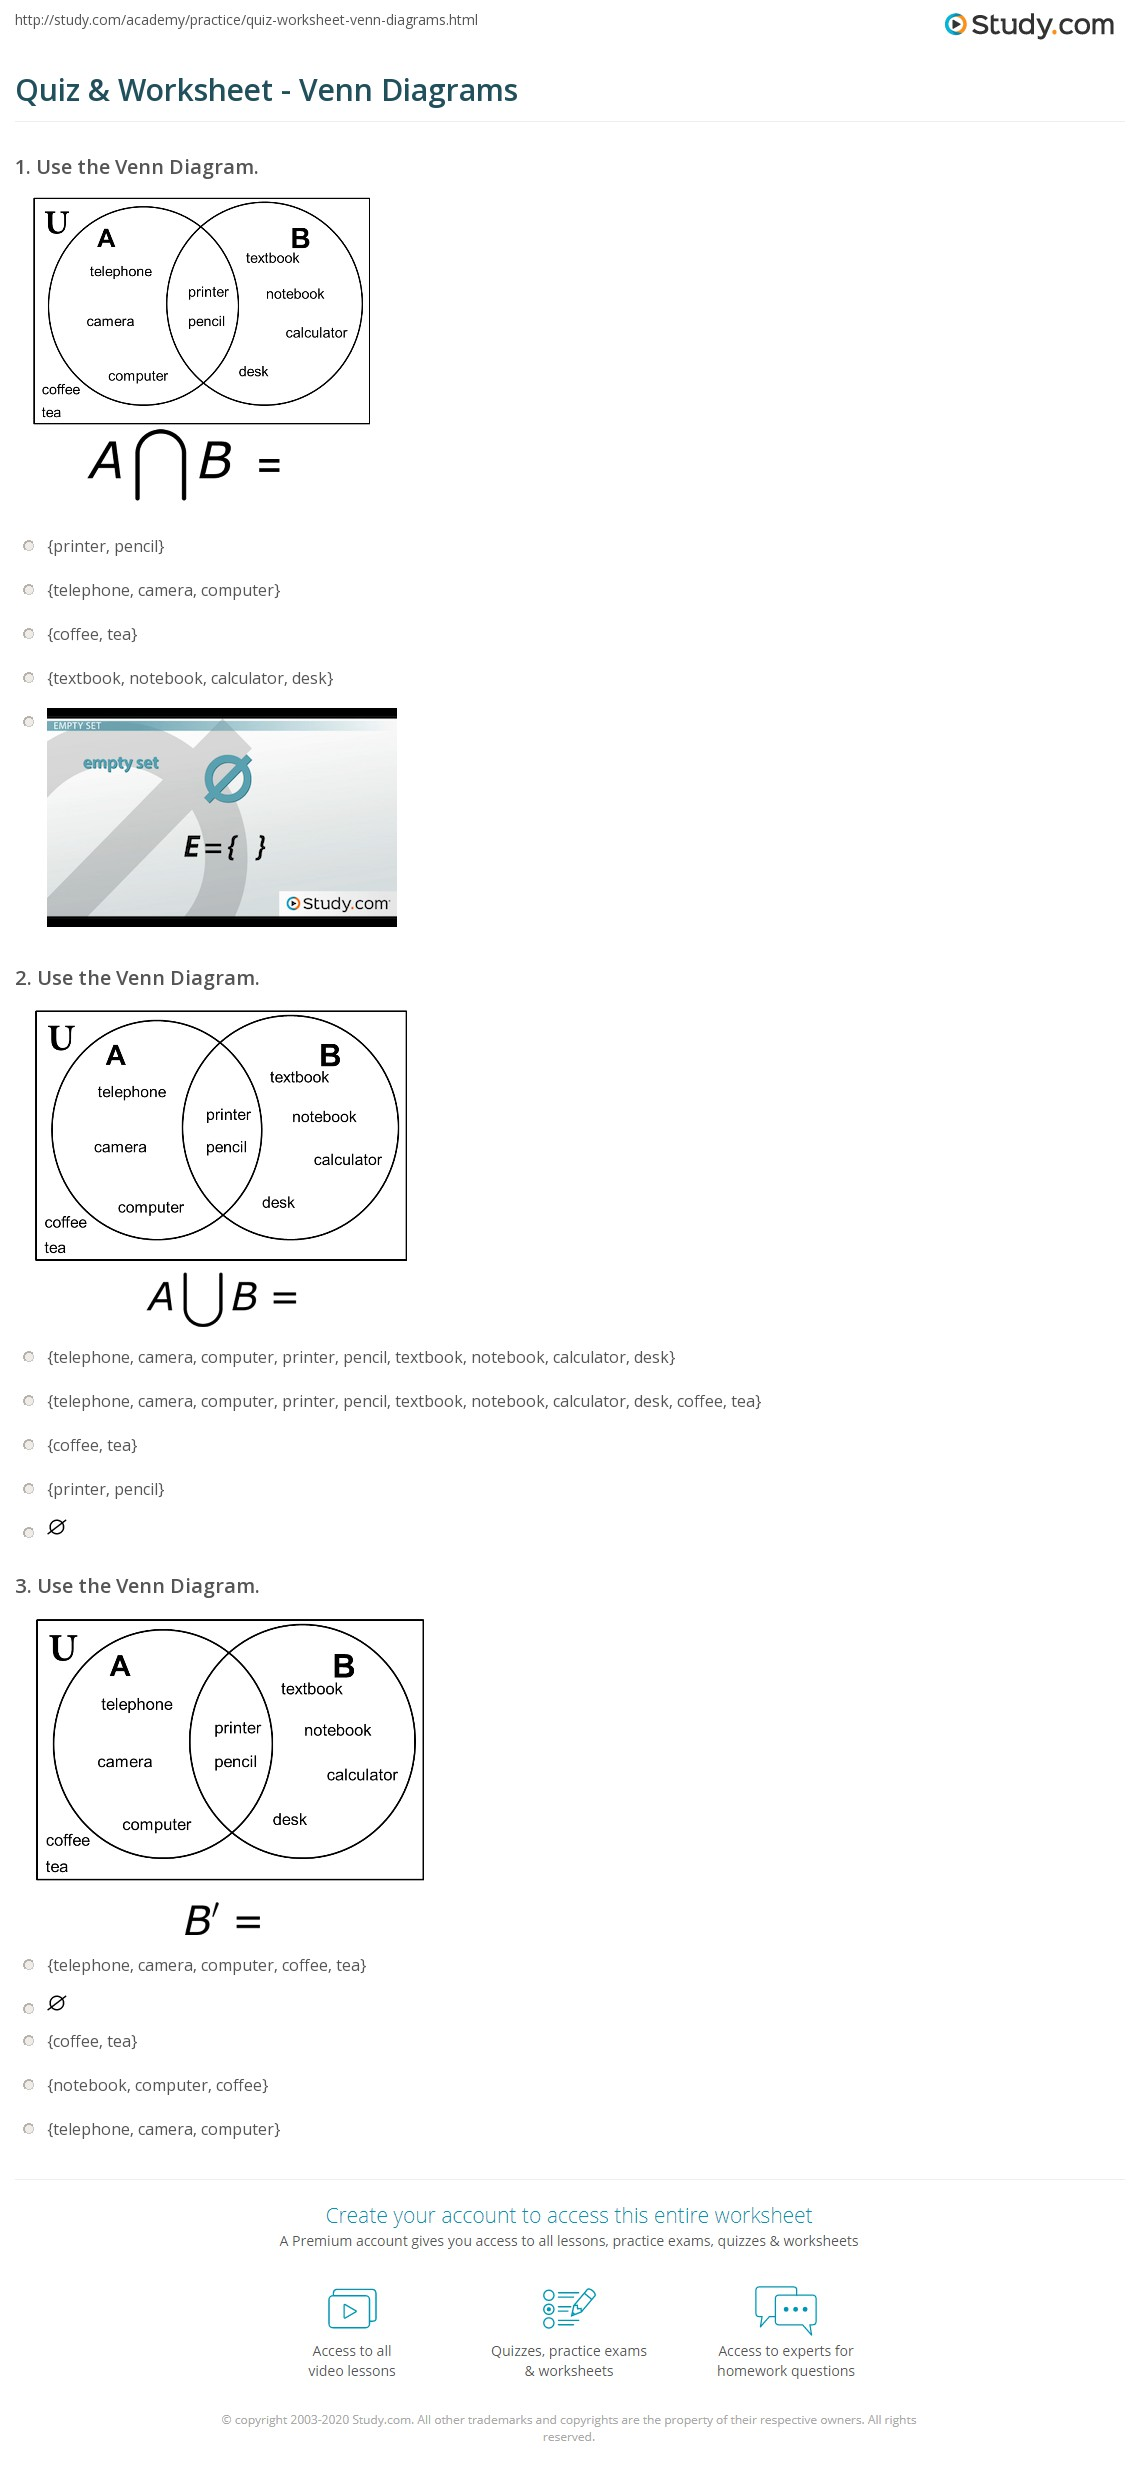 Uncategorized Math Venn Diagram Worksheets quiz worksheet venn diagrams study com print subset disjoint overlap intersection union worksheet